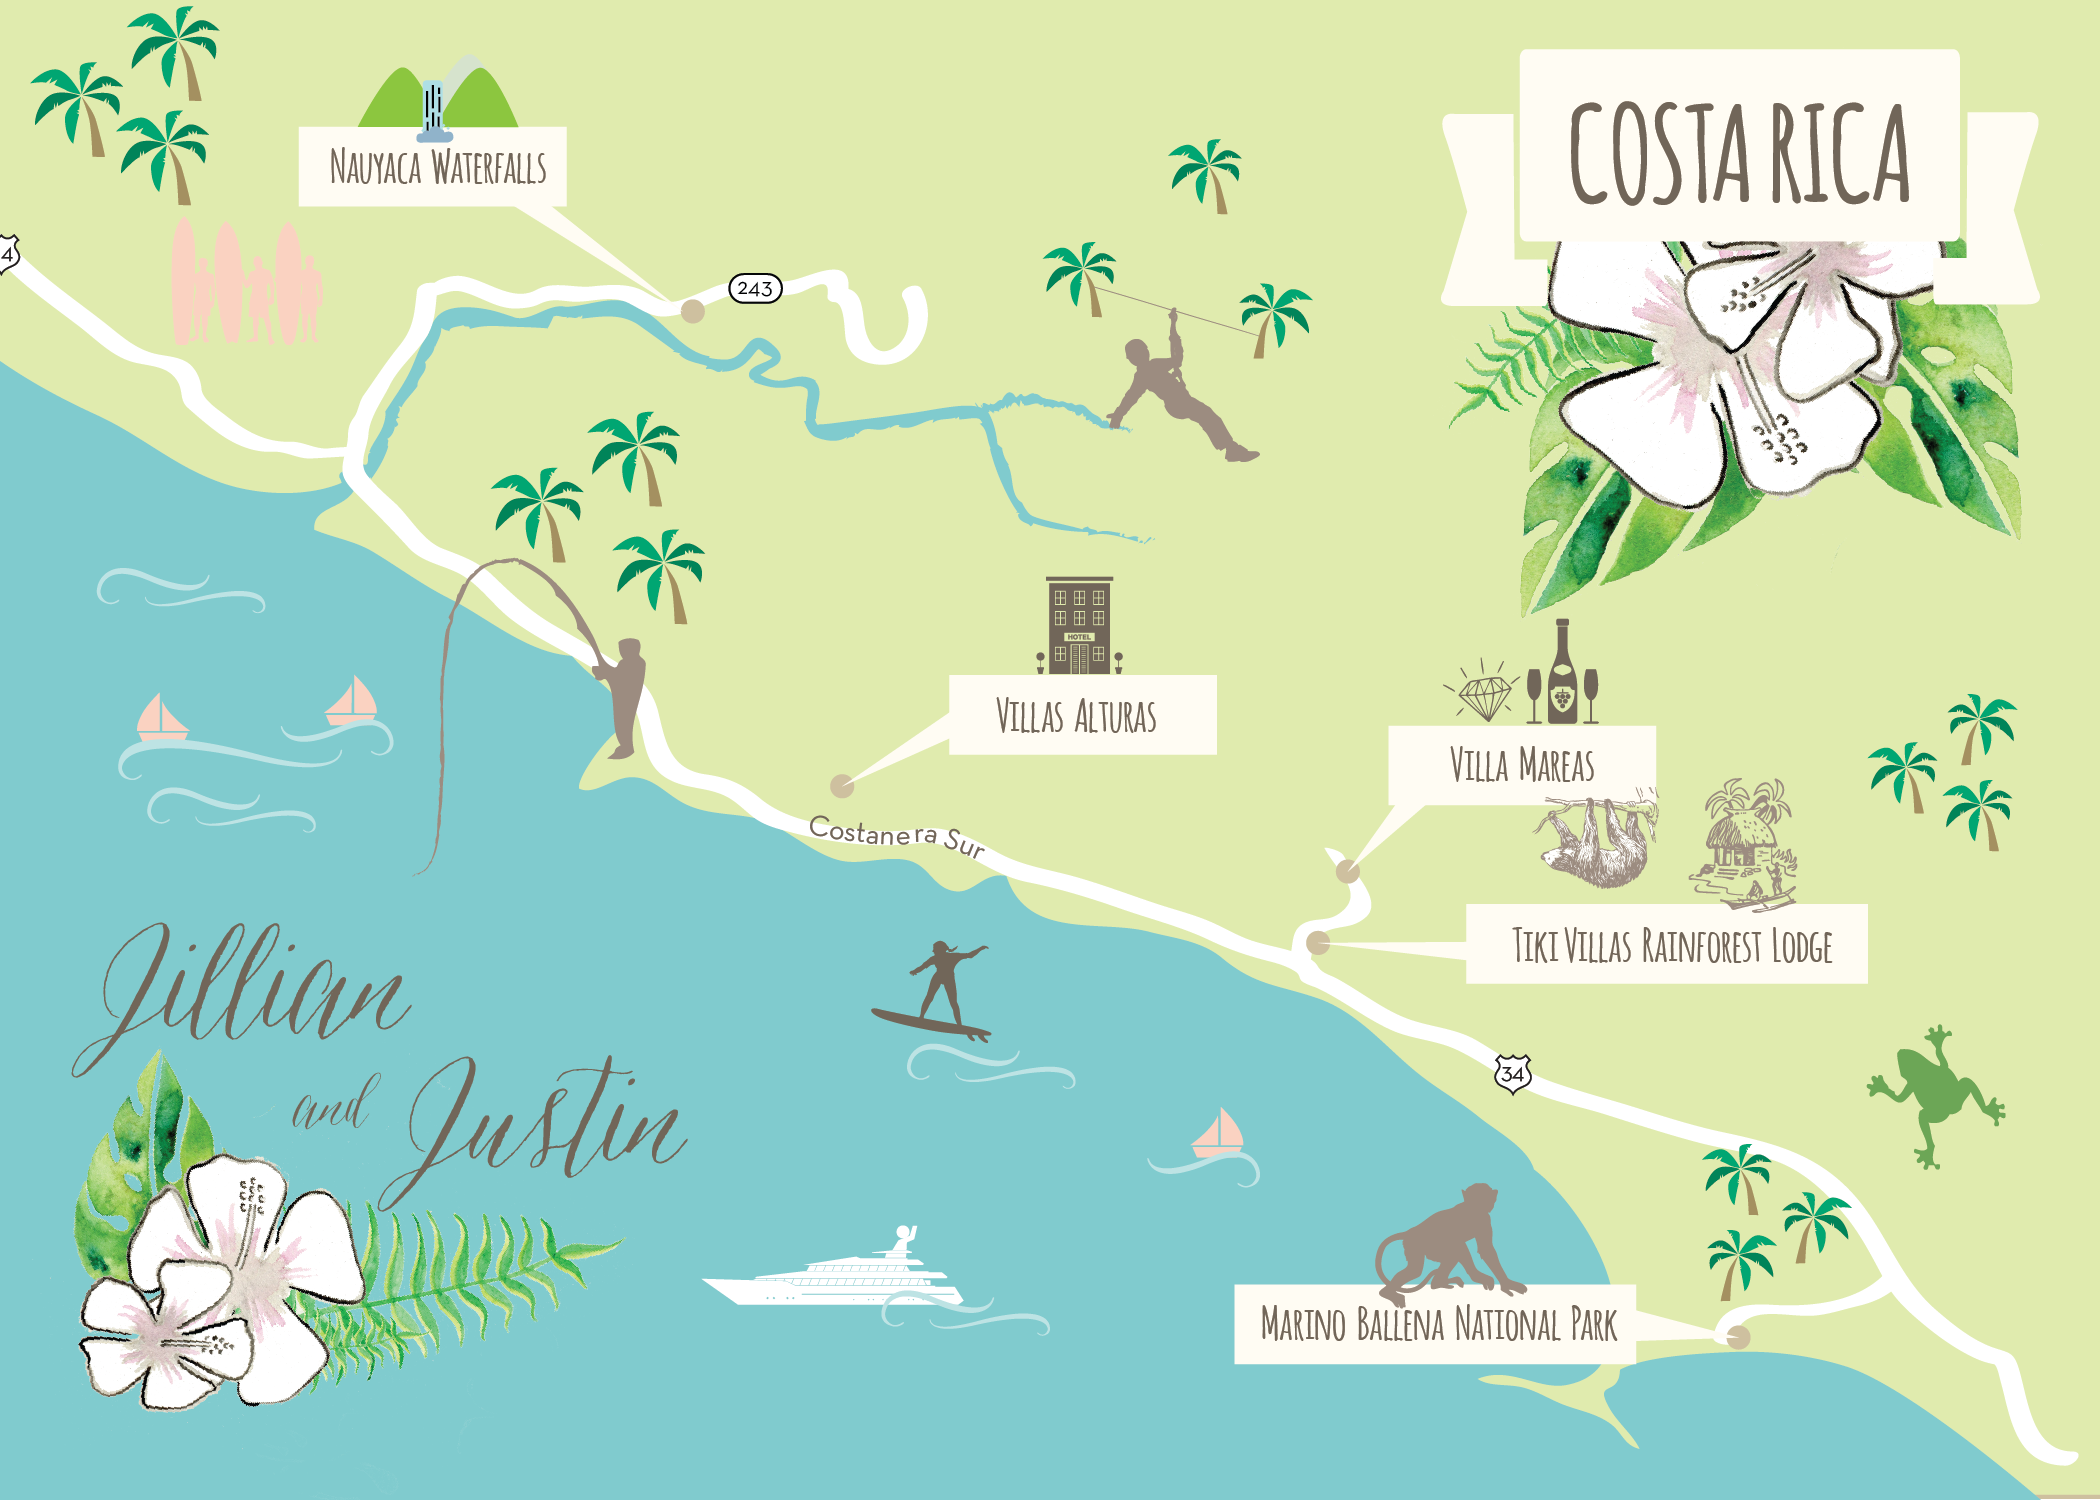 Costa Rica Jillian 5x7 Tri-Fold 40 Invitation prints_Map Front copy.png